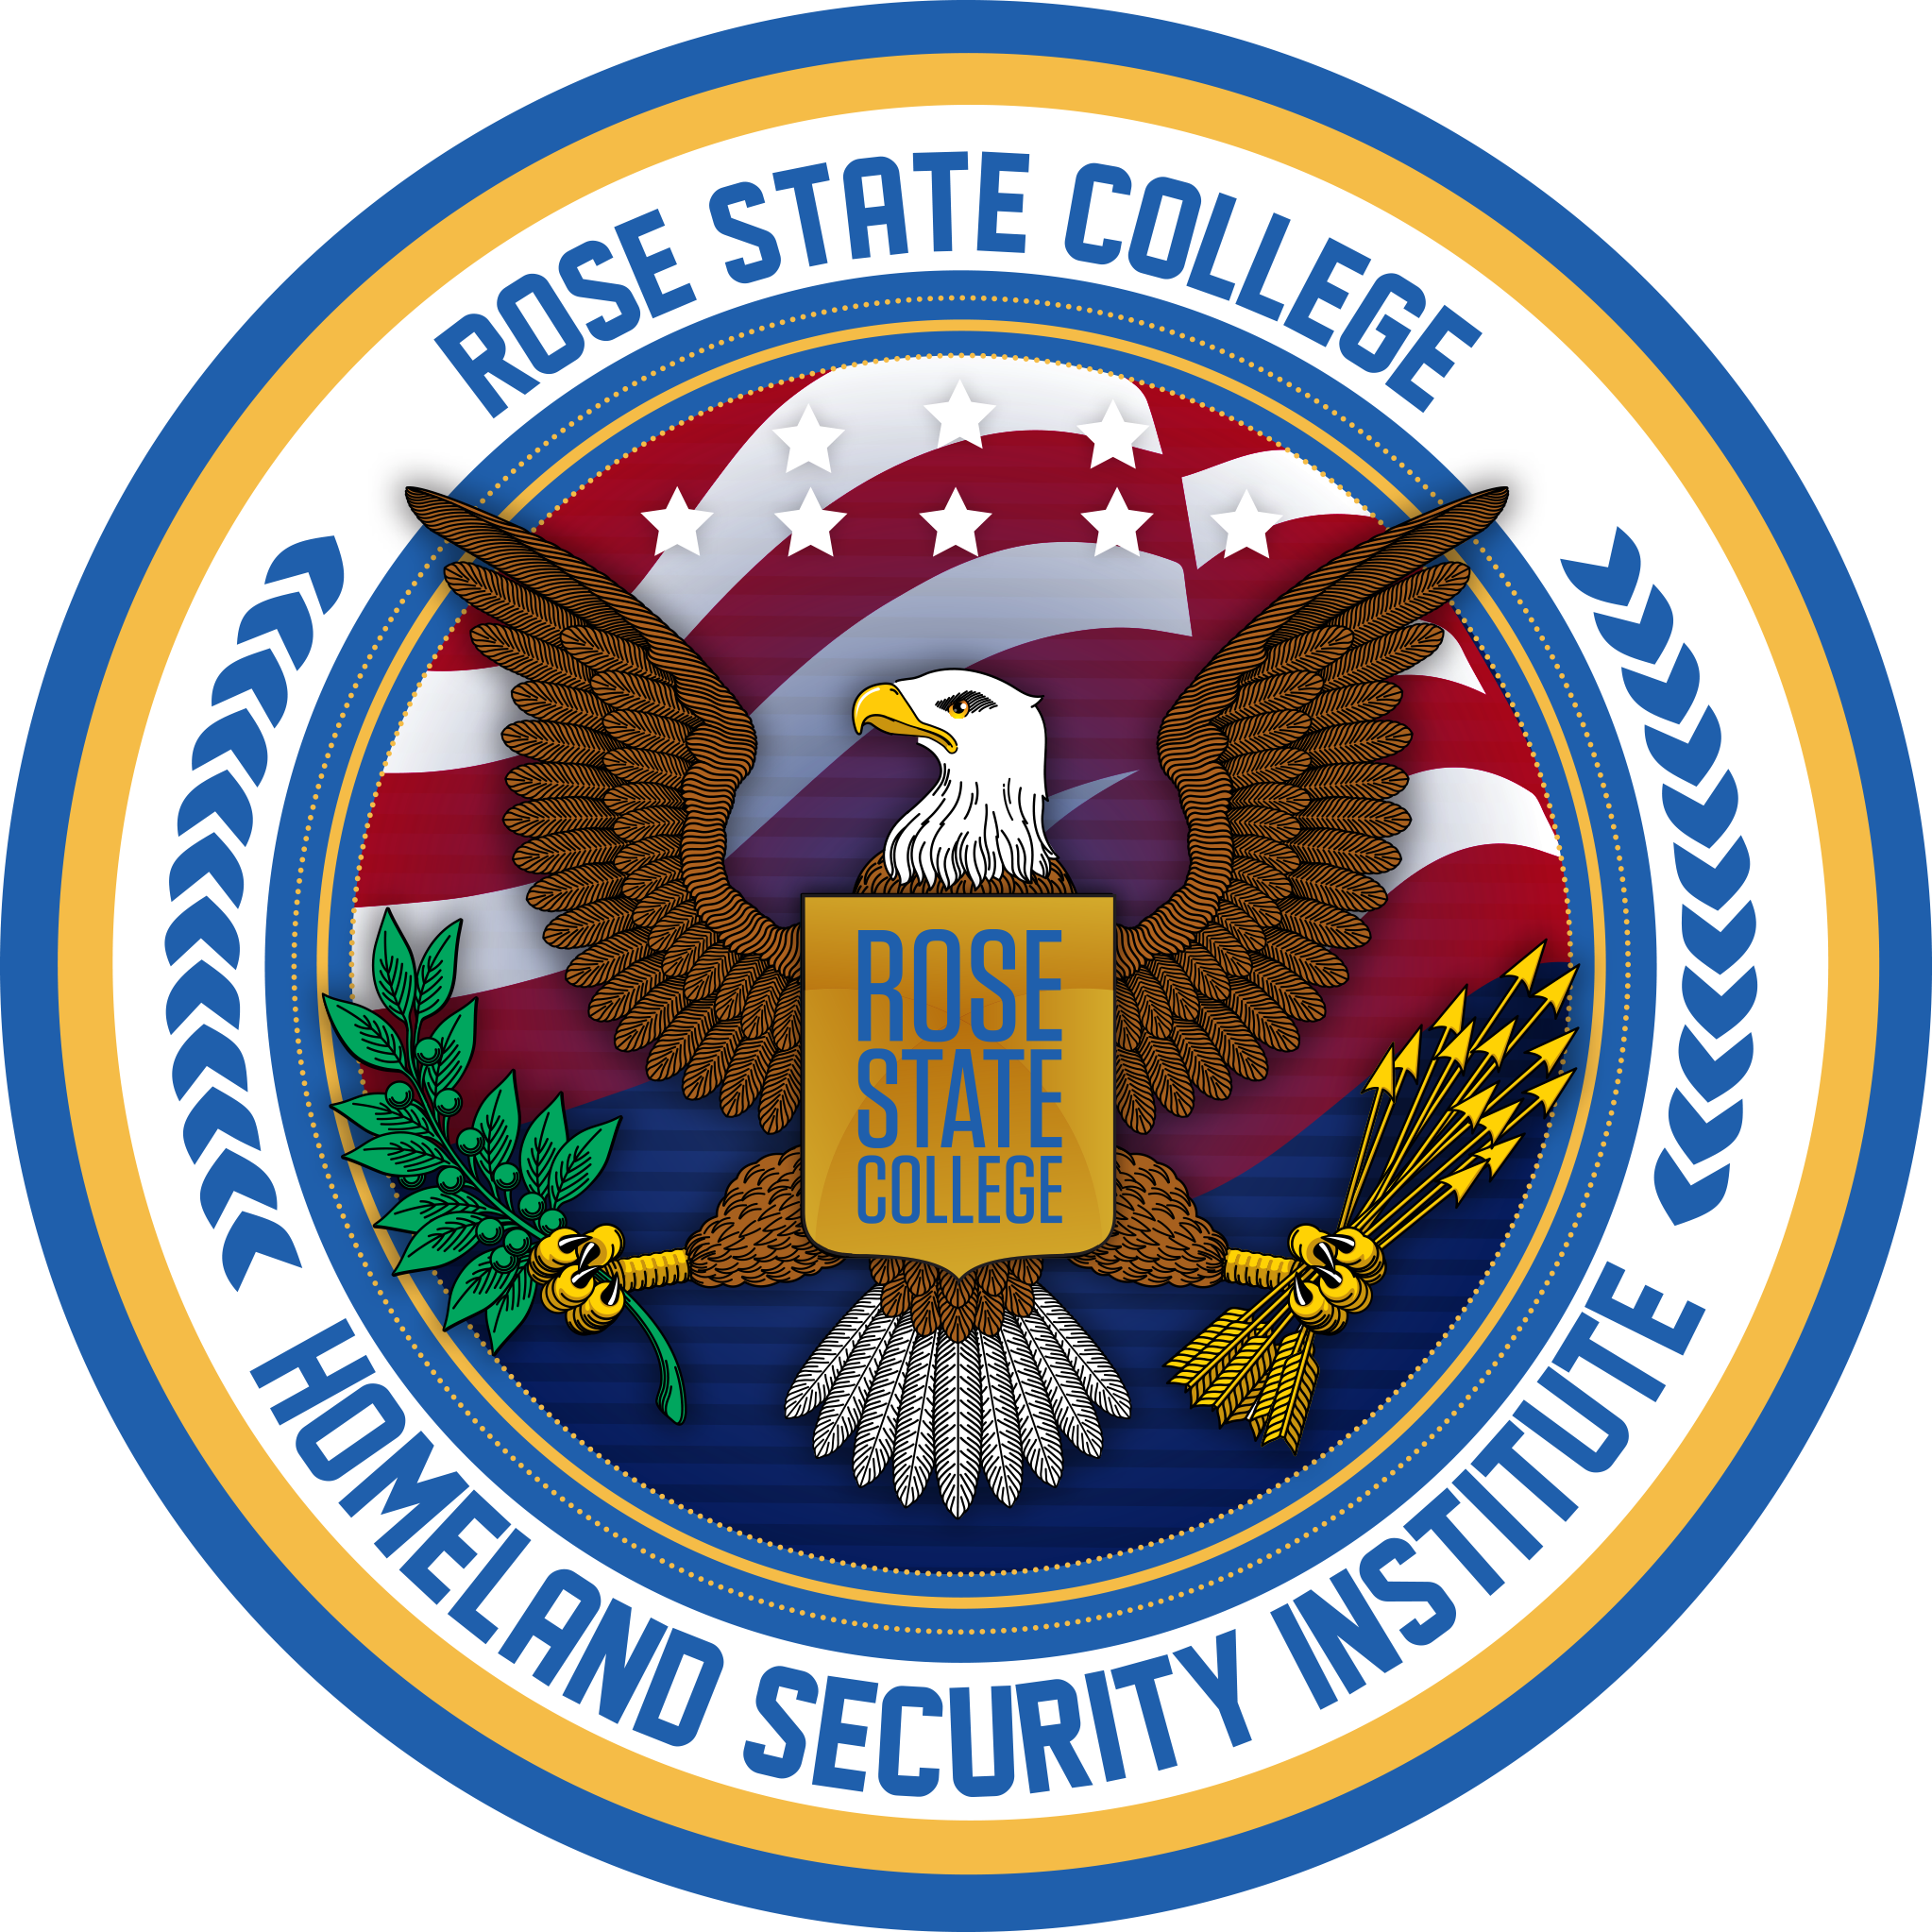 homeland security research paper Rand is a world leader in research on terrorism, counterterrorism, counterinsurgency, disaster management, and homeland security--topics that affect a wide.